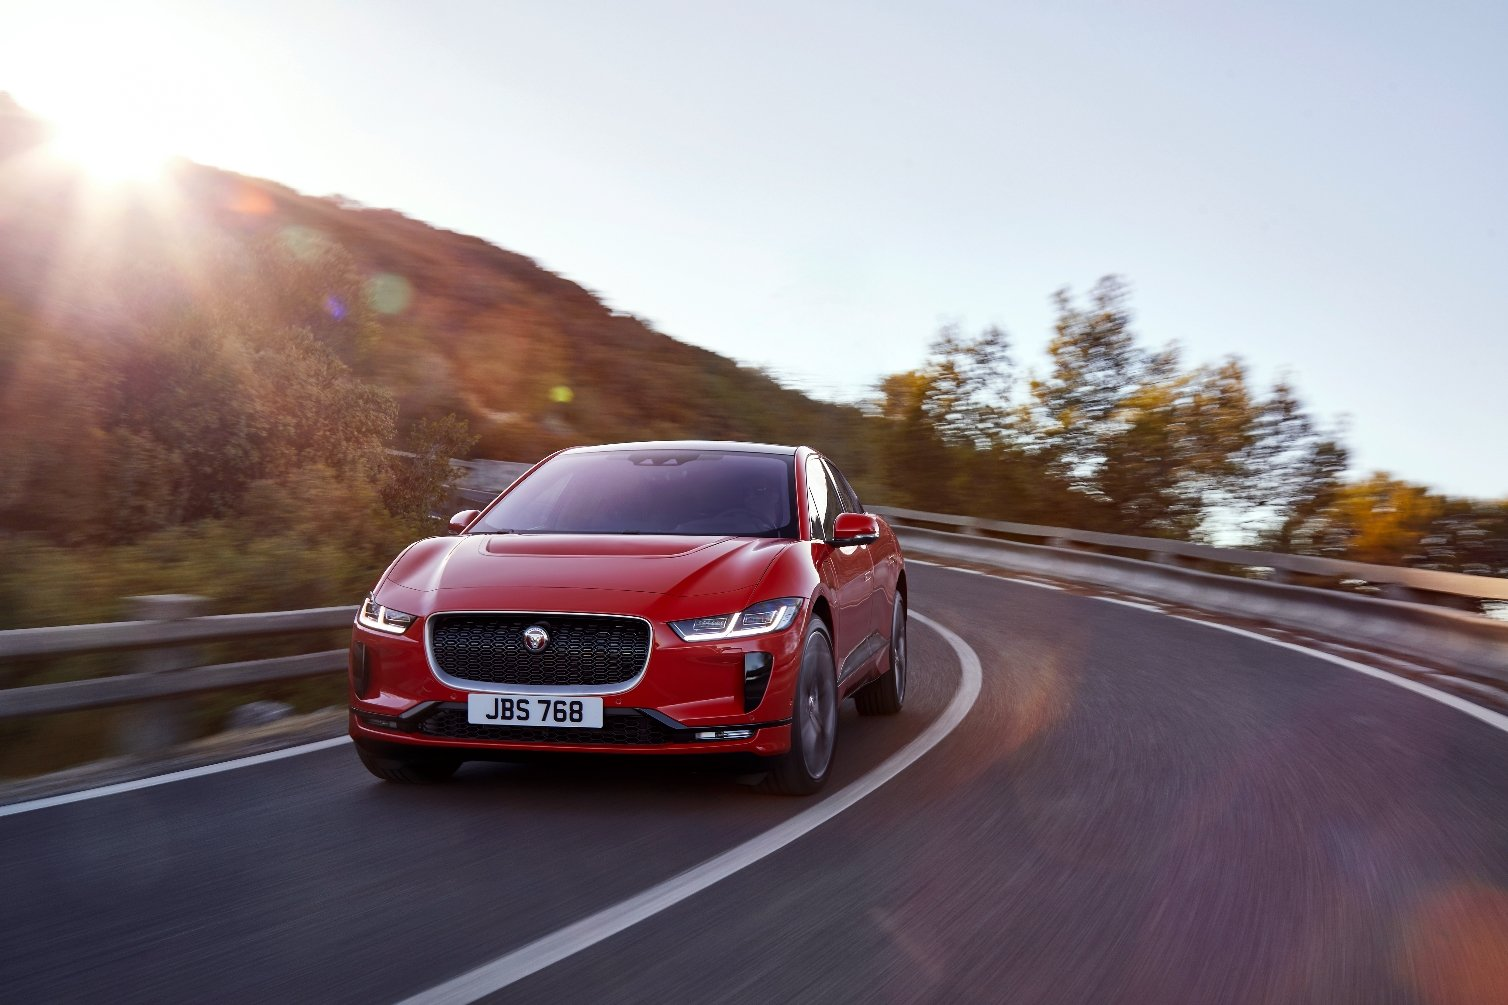 Jaguar's I-Pace is a speedy dual-motor Model X competitor